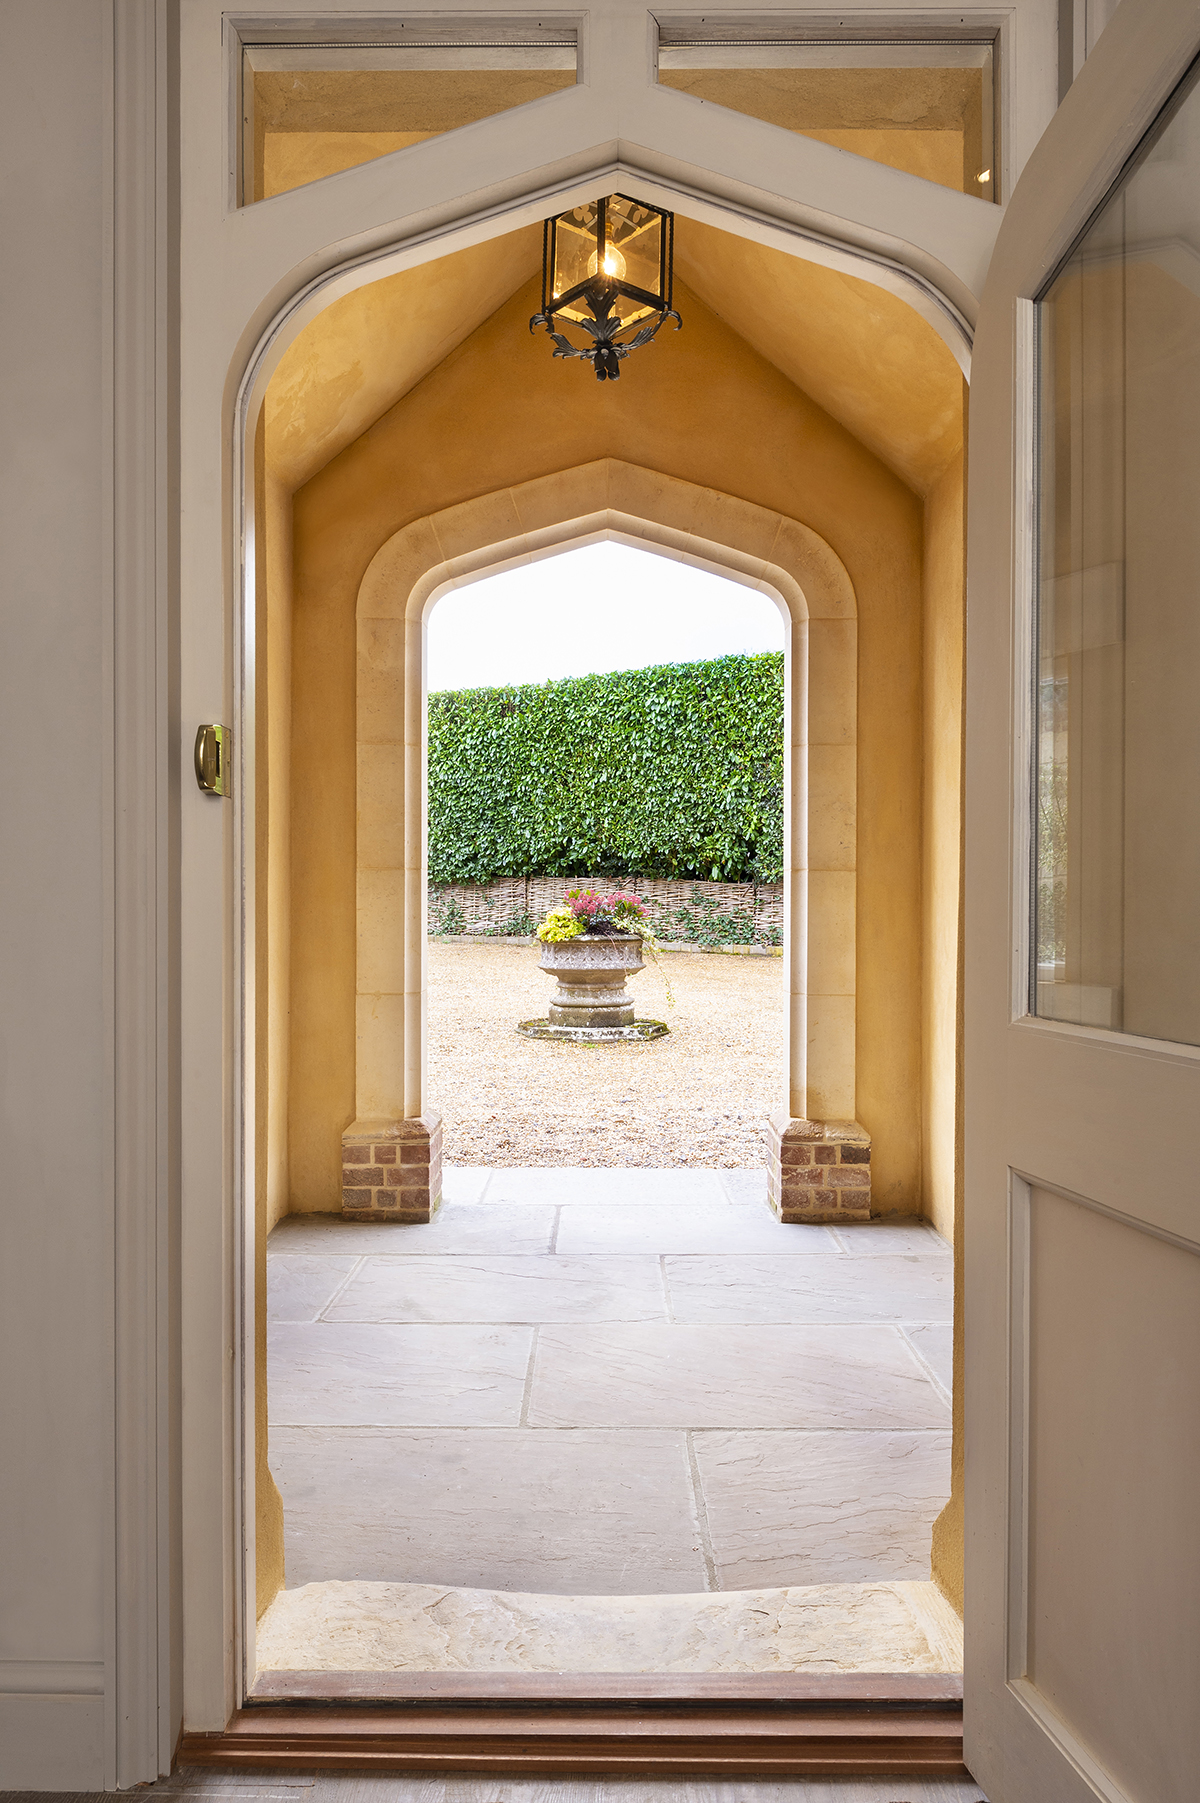 02-elsted-porch-rectory-house-extension-handmade-bricks-bath-stone-arch-stonemasonry-architecture-chichester-west-sussex-south-downs-national-park-uk-rider-stirland-architects.jpg.jpg